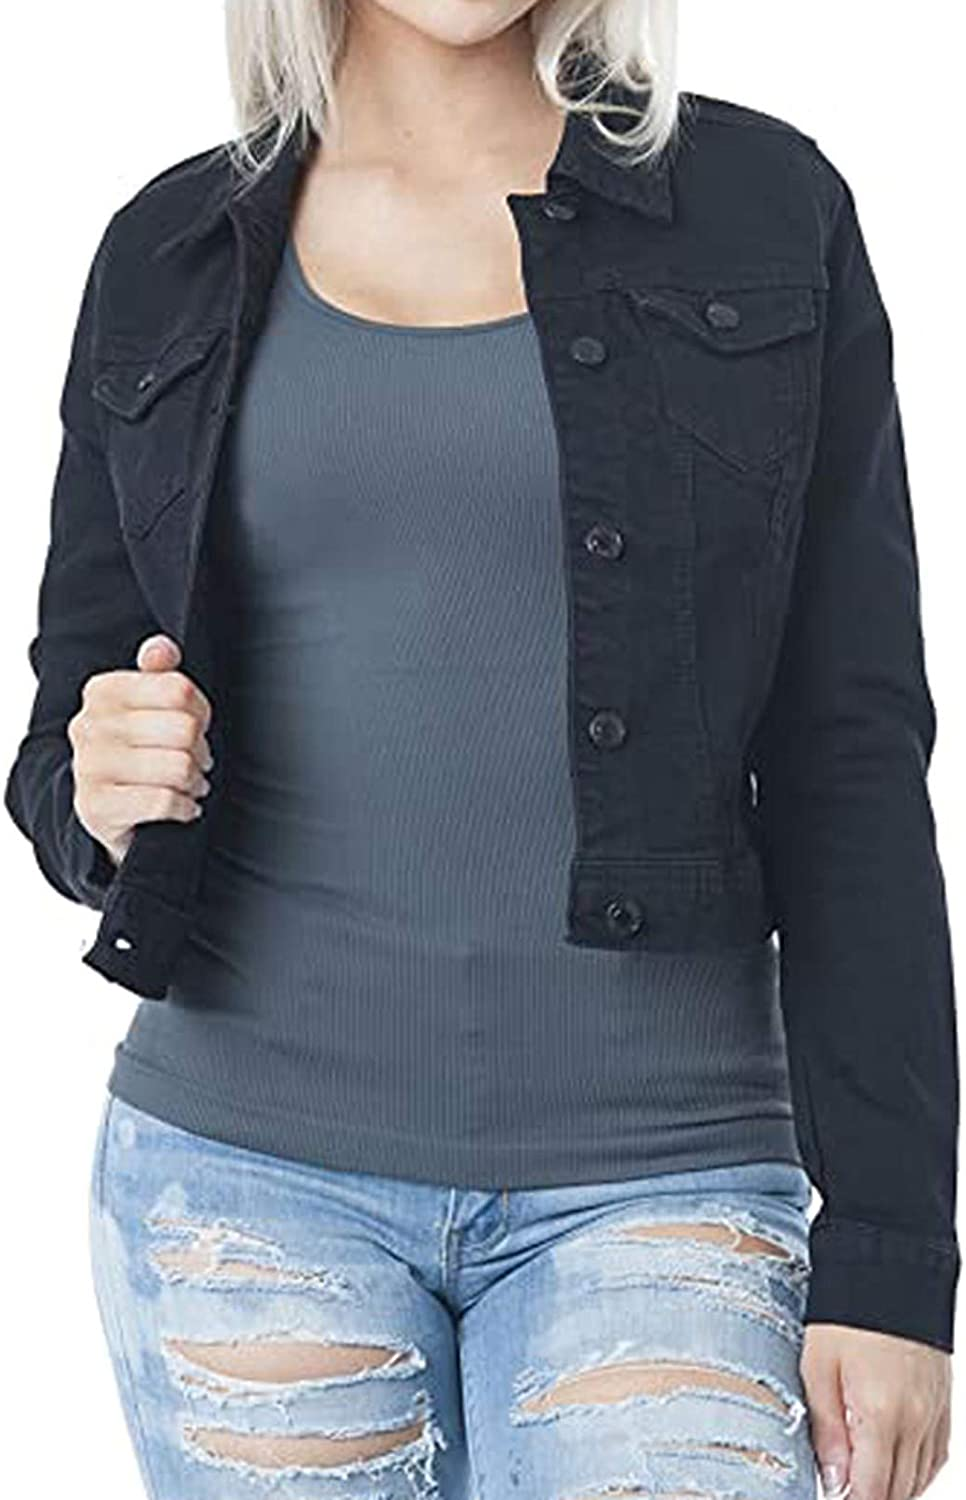 2020 Women's Denim Short Jacket with Pocket Detail,Regular Fit Tops with Button Placket,New Lapel Tops Blouse Sweater